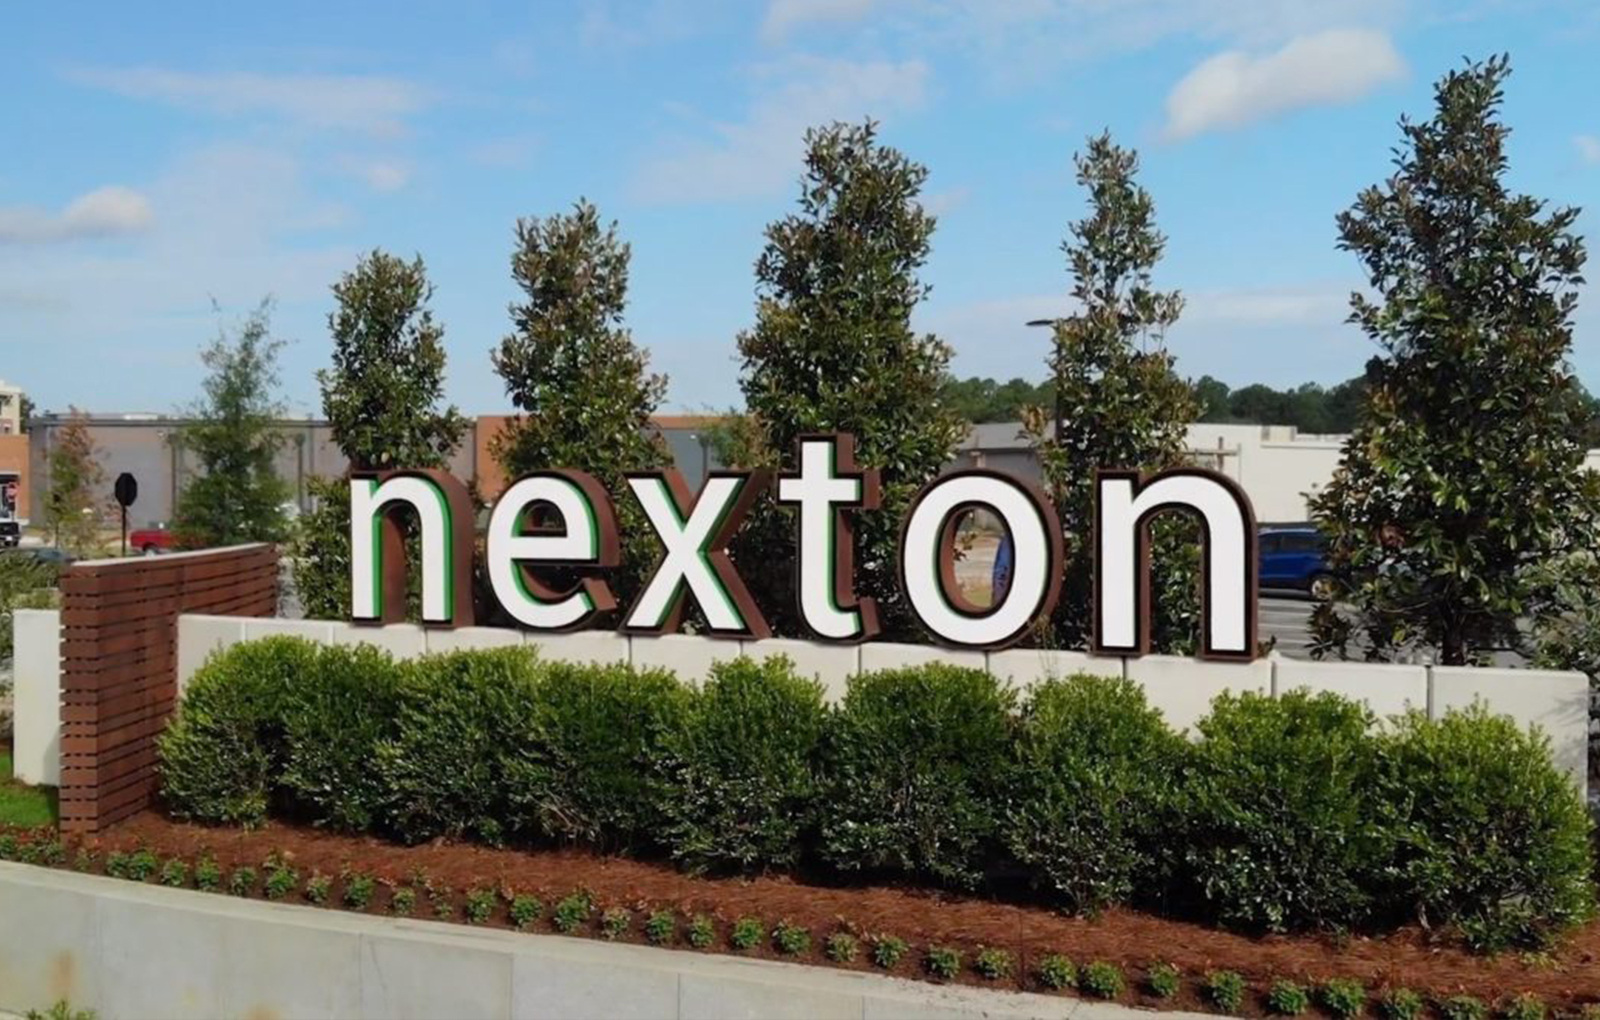 Photo of the Nexton development sign in Summerville, SC.